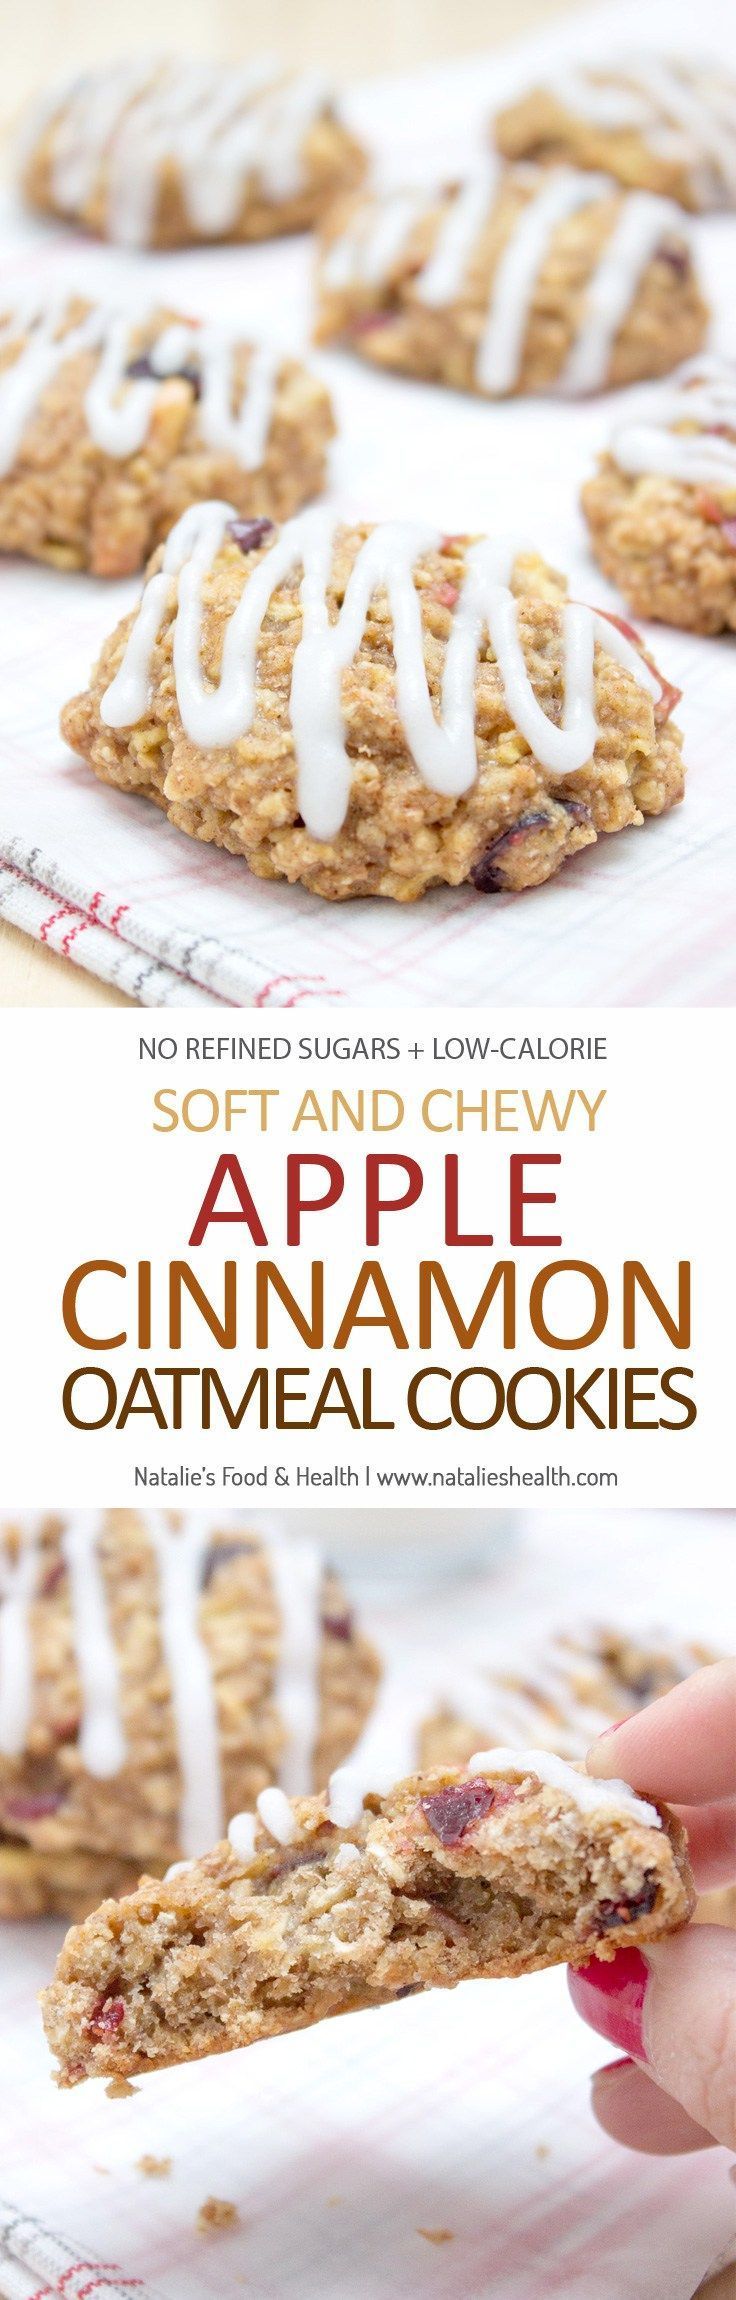 Fragrant, soft and chewy Apple Cinnamon Oatmeal Cookies are perfect high-fiber breakfast or healthy snack ready in just 20 minutes. These cookies are very nutritious, made with all healthy ingredients and contain no refined sugars. CLICK to grab the recip